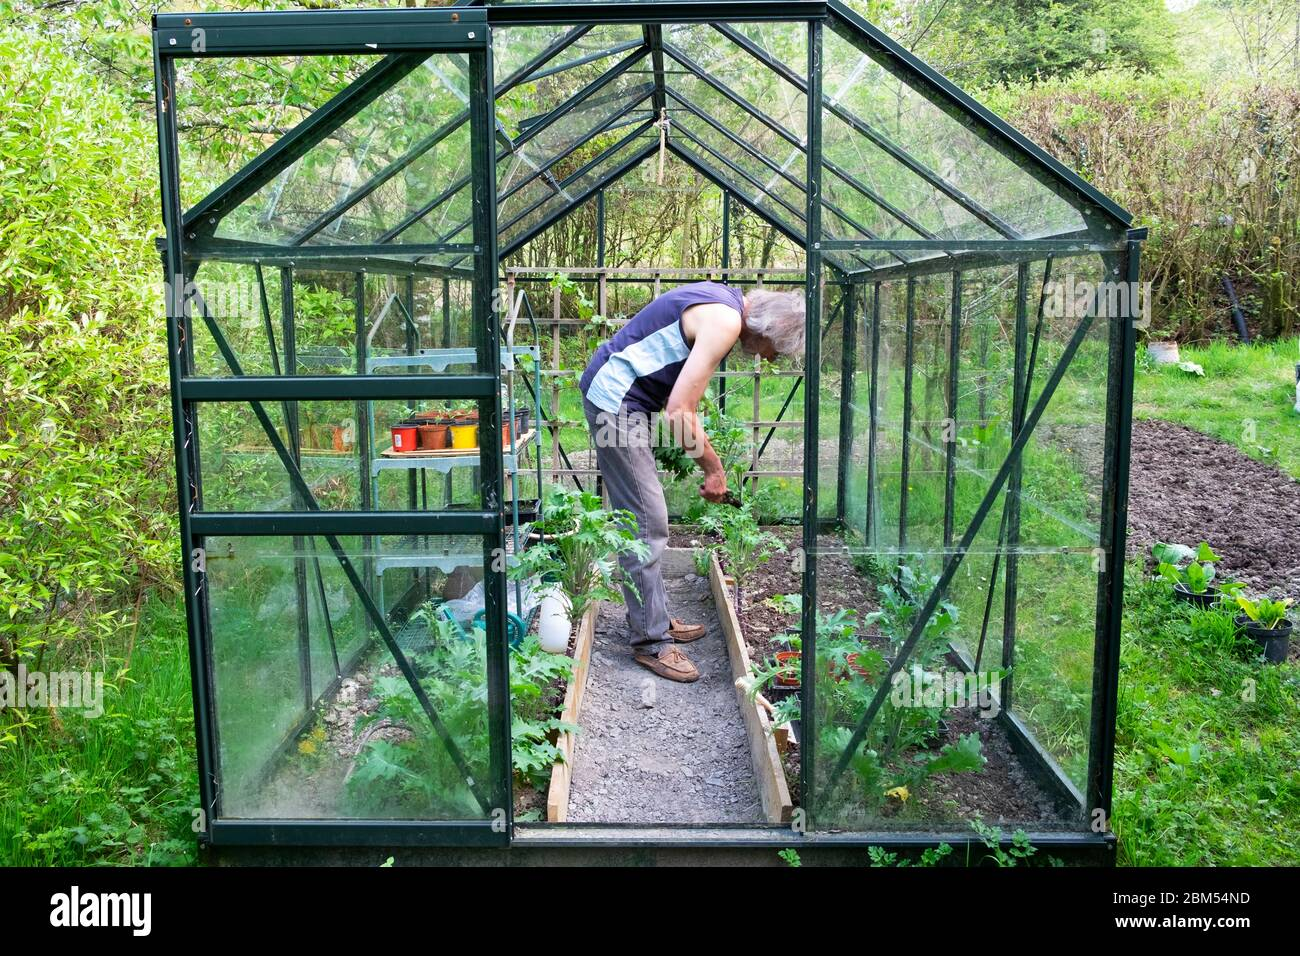 Exterior view of greenhouse and older man bending over working inside cutting Russian kale leaves in April spring Wales UK  KATHY DEWITT Stock Photo